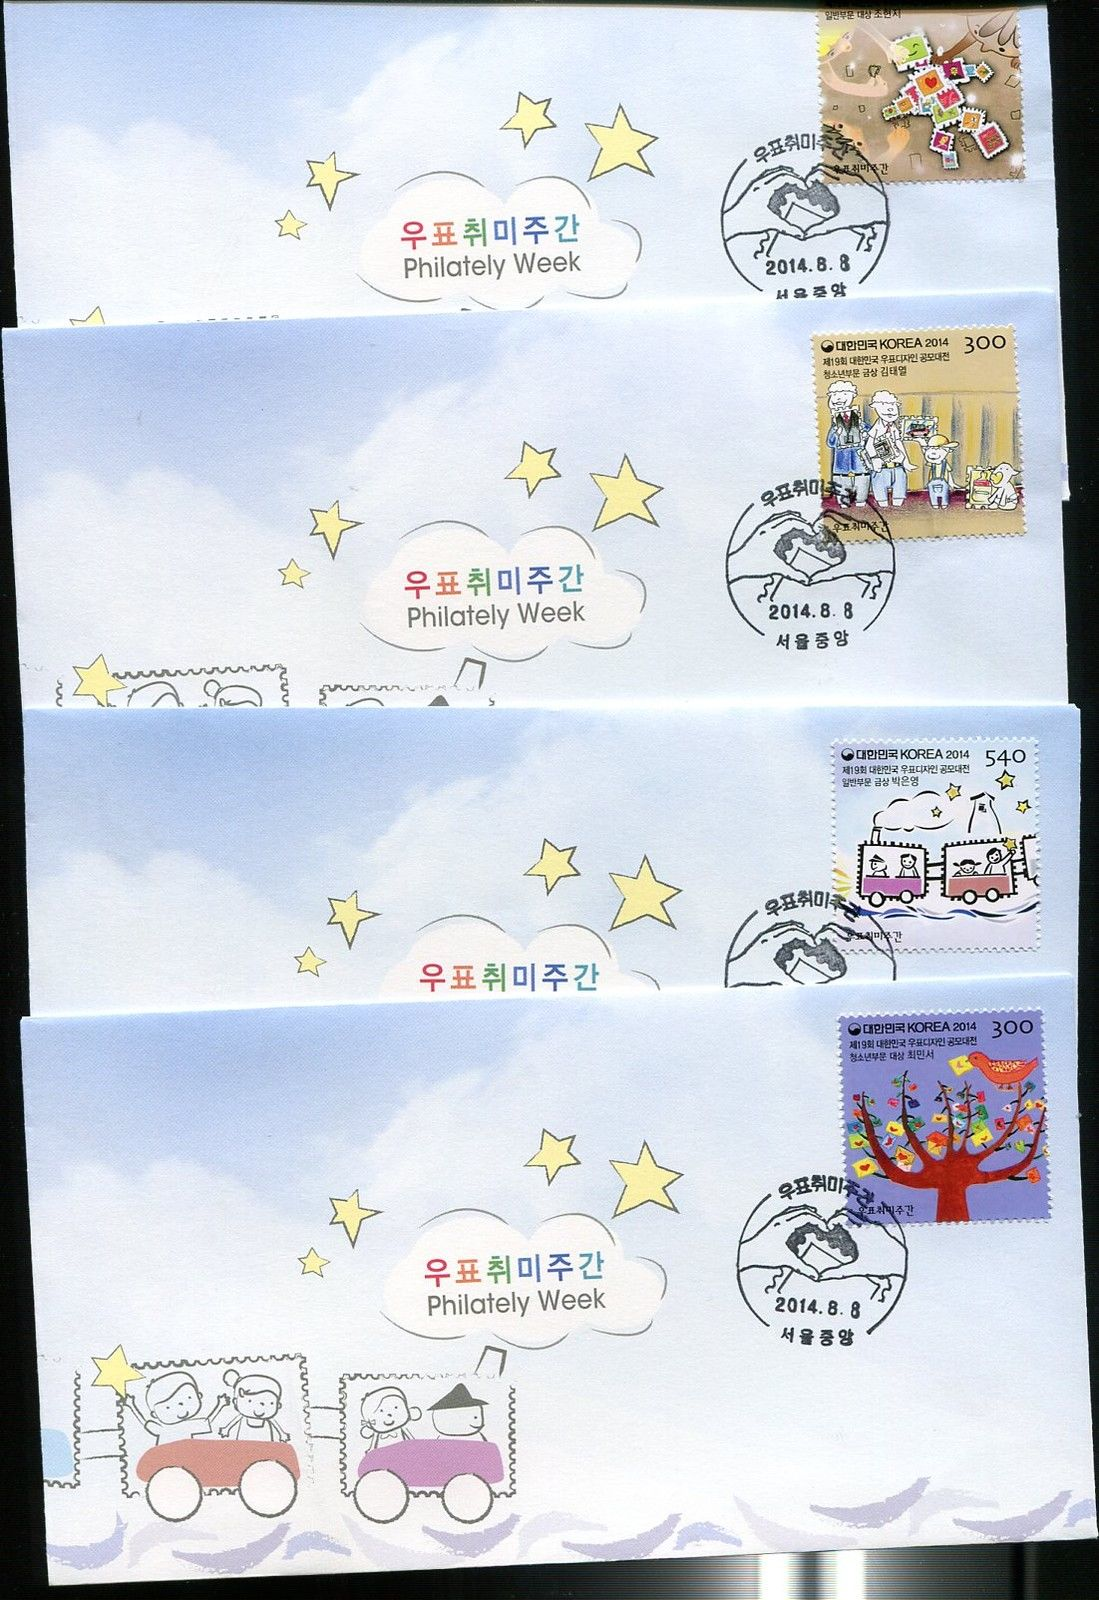 South Korea - Scott #3014-3017 (2014) individual first day covers [NIMC2018]; image sourced from active eBay auction.